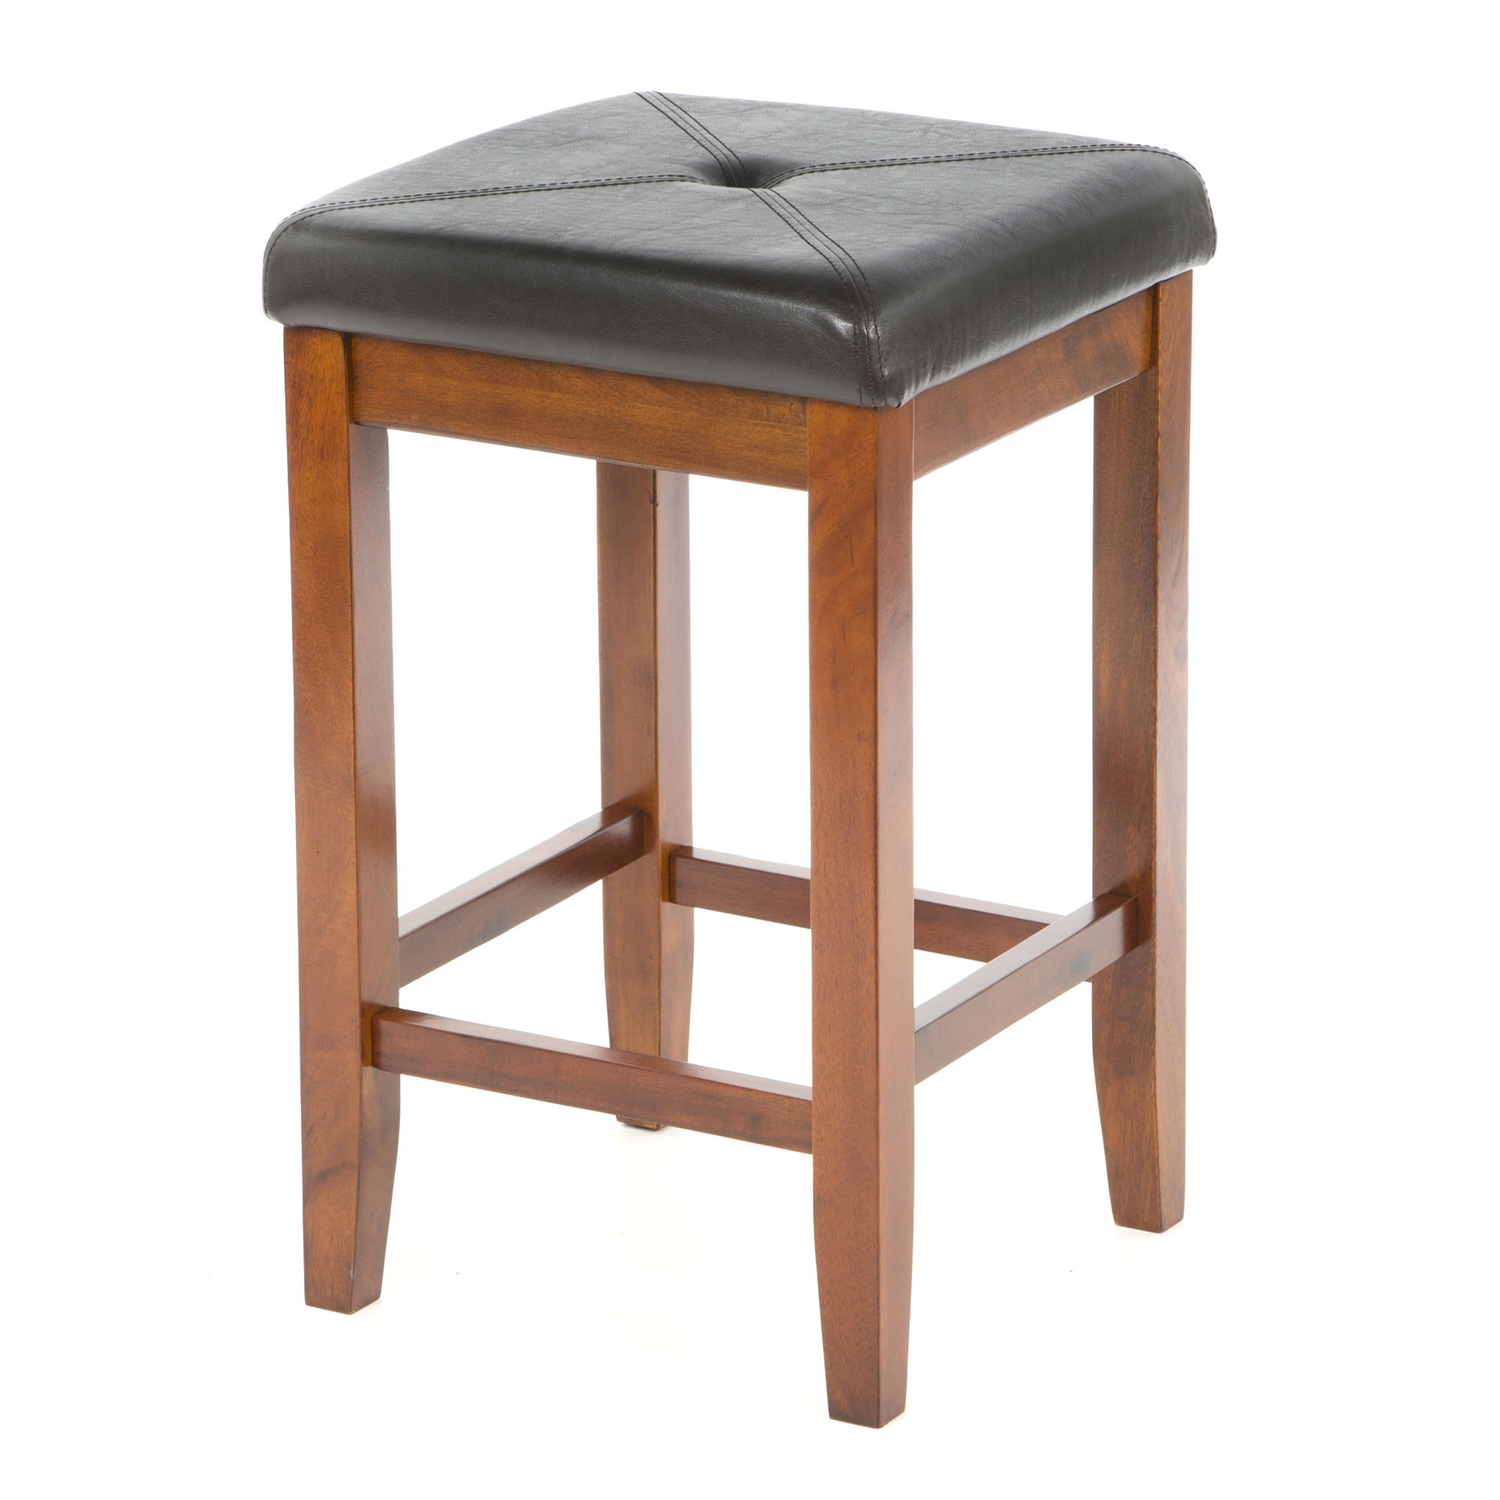 Admirable Set Of 2 24 Inch High Cherry Bar Stools W Cushion Faux Leather Seat Evergreenethics Interior Chair Design Evergreenethicsorg